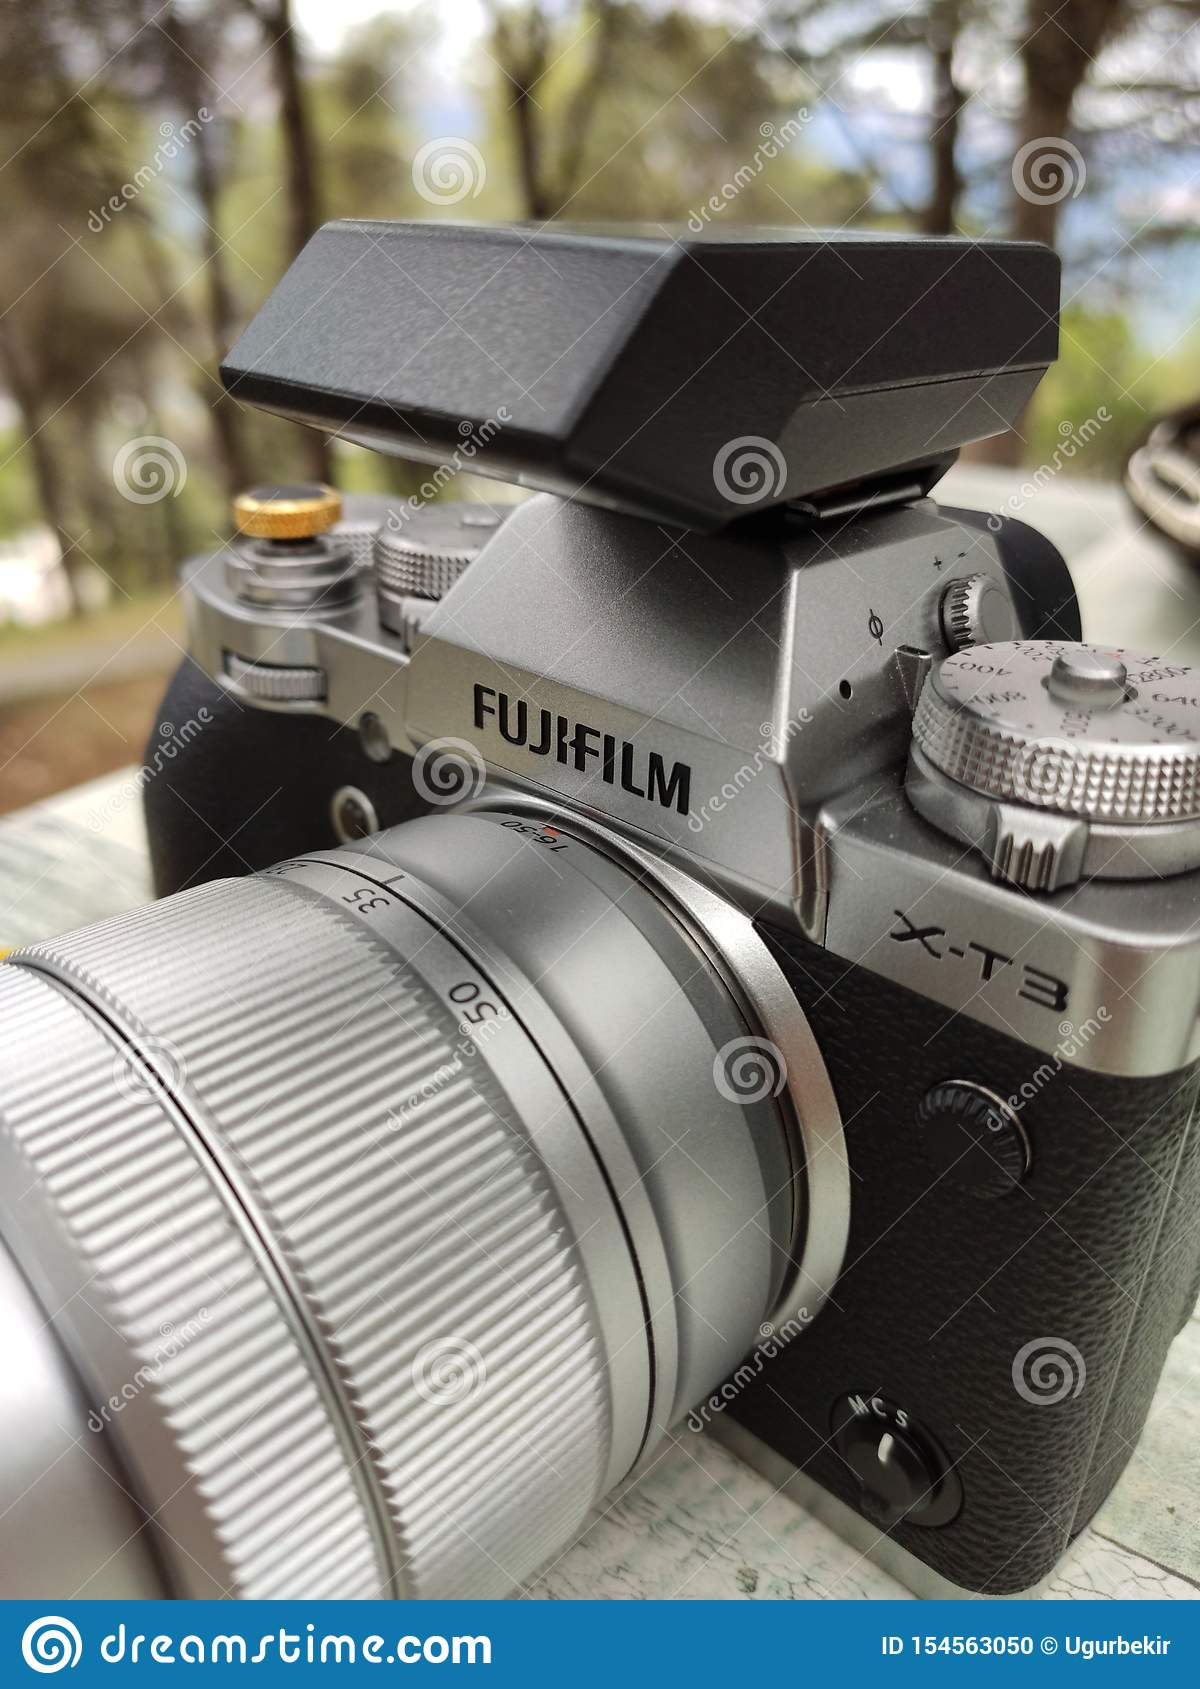 Vintage silver and black Fujifilm camera with brown leather strap on wooden table. Copy space for text